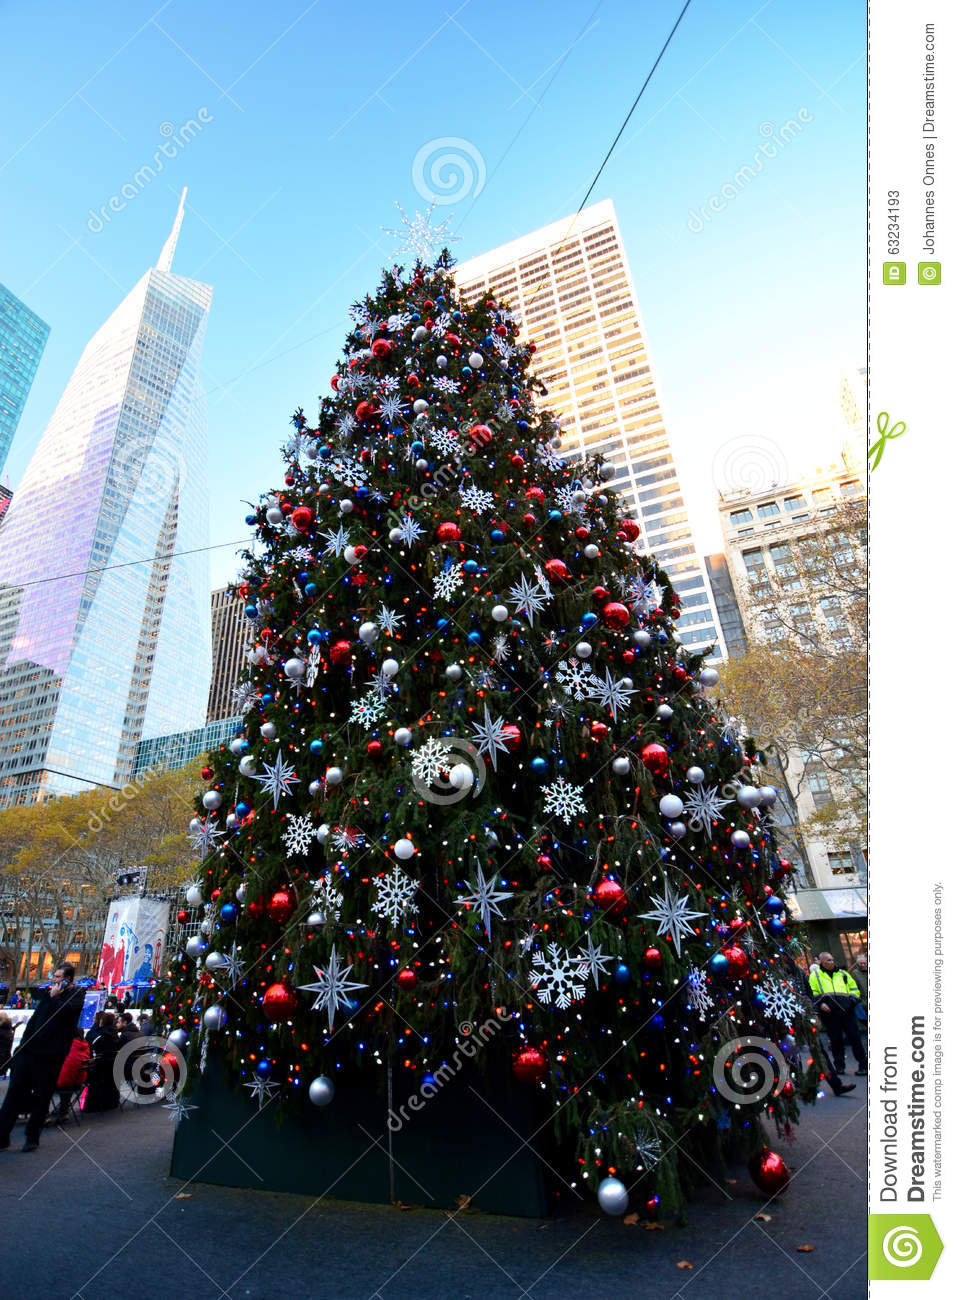 new york usa december 3 2015 ice skating in bryant park ice rink with view of christmas tree and people